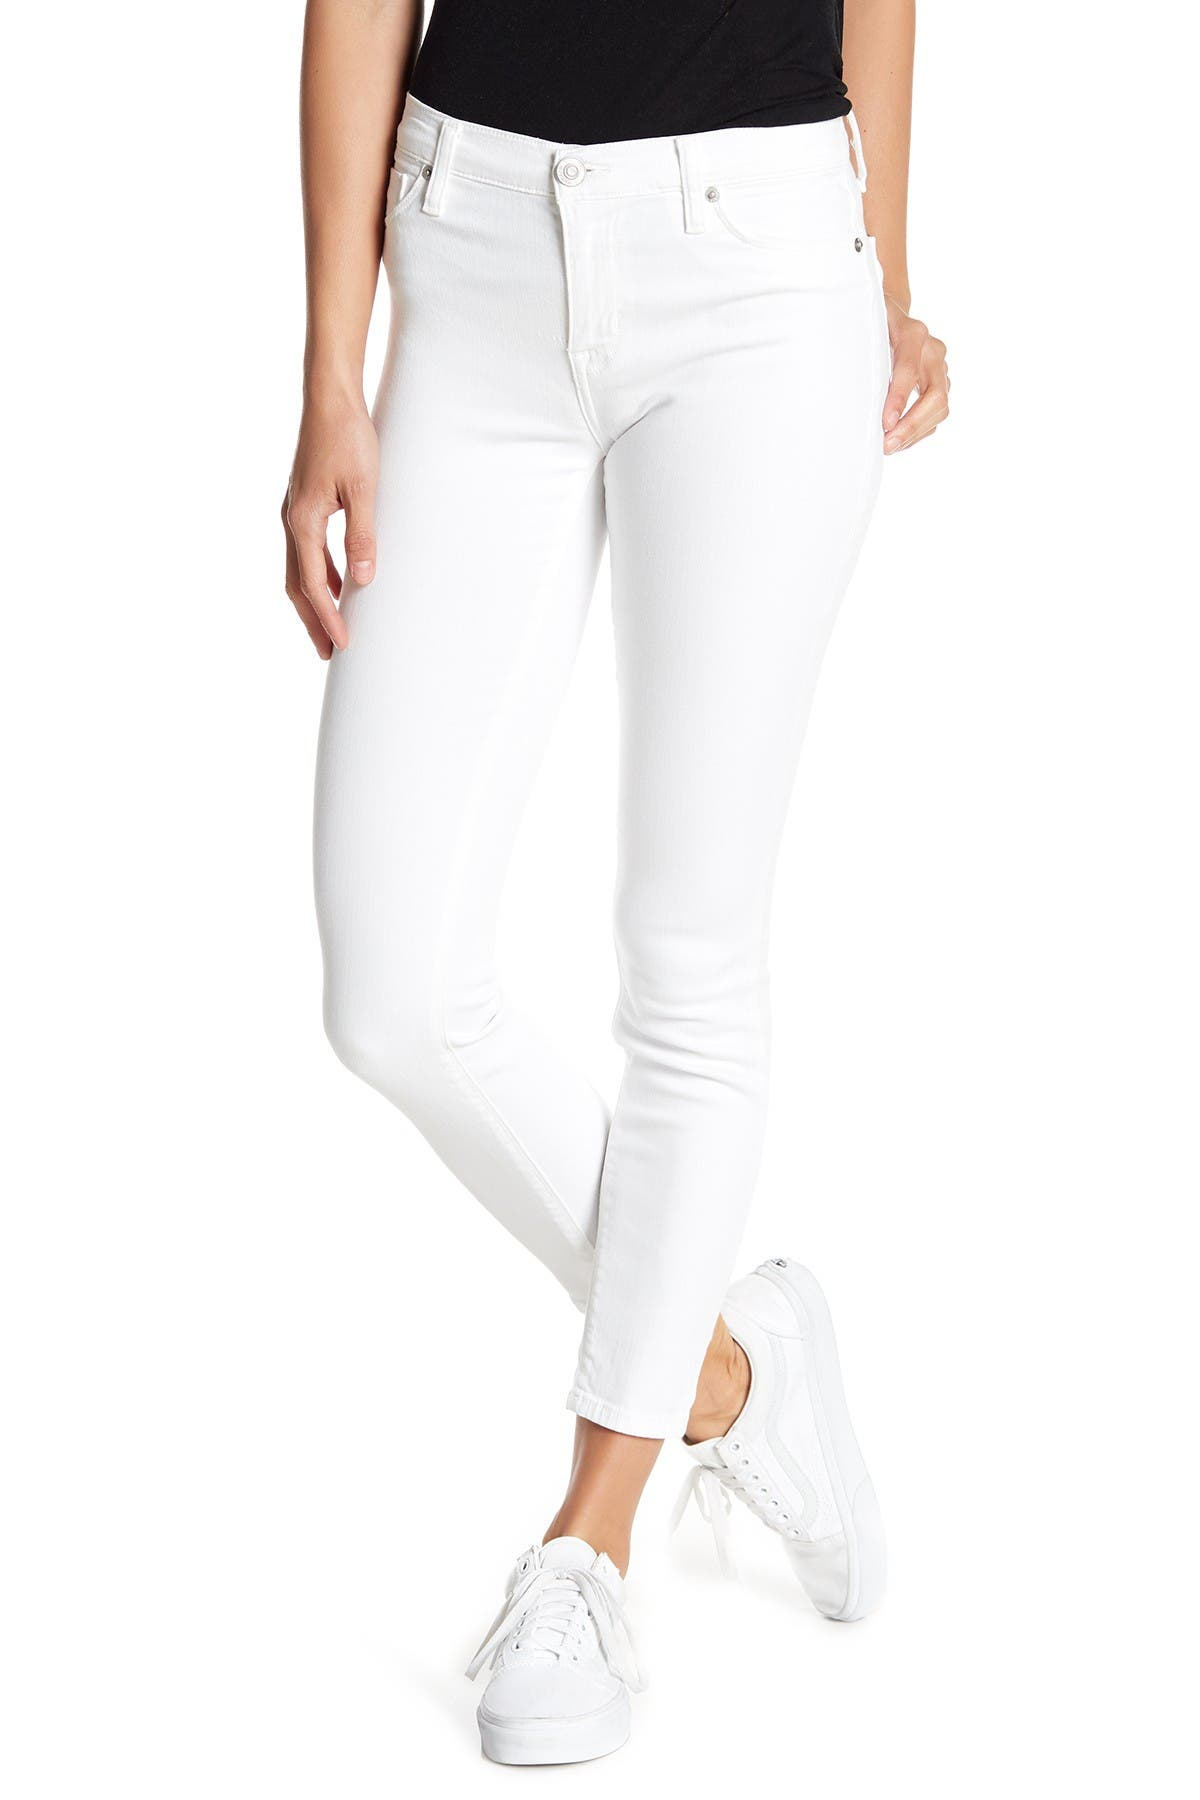 Image of HUDSON Jeans Natalie Mid Rise Ankle Skinny Jeans